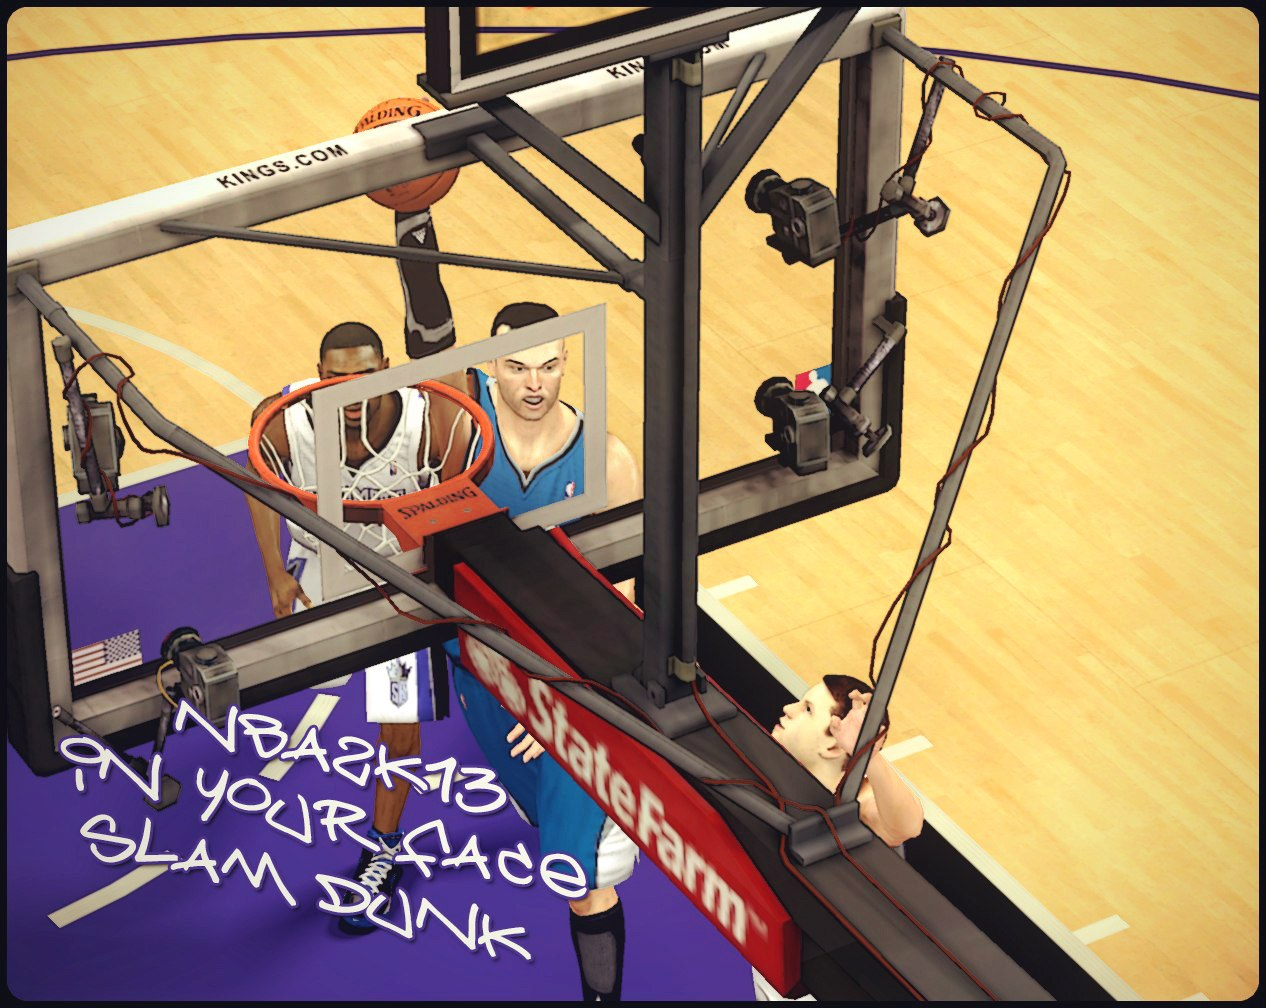 NBA2K13 In Your Face Slam Dunk